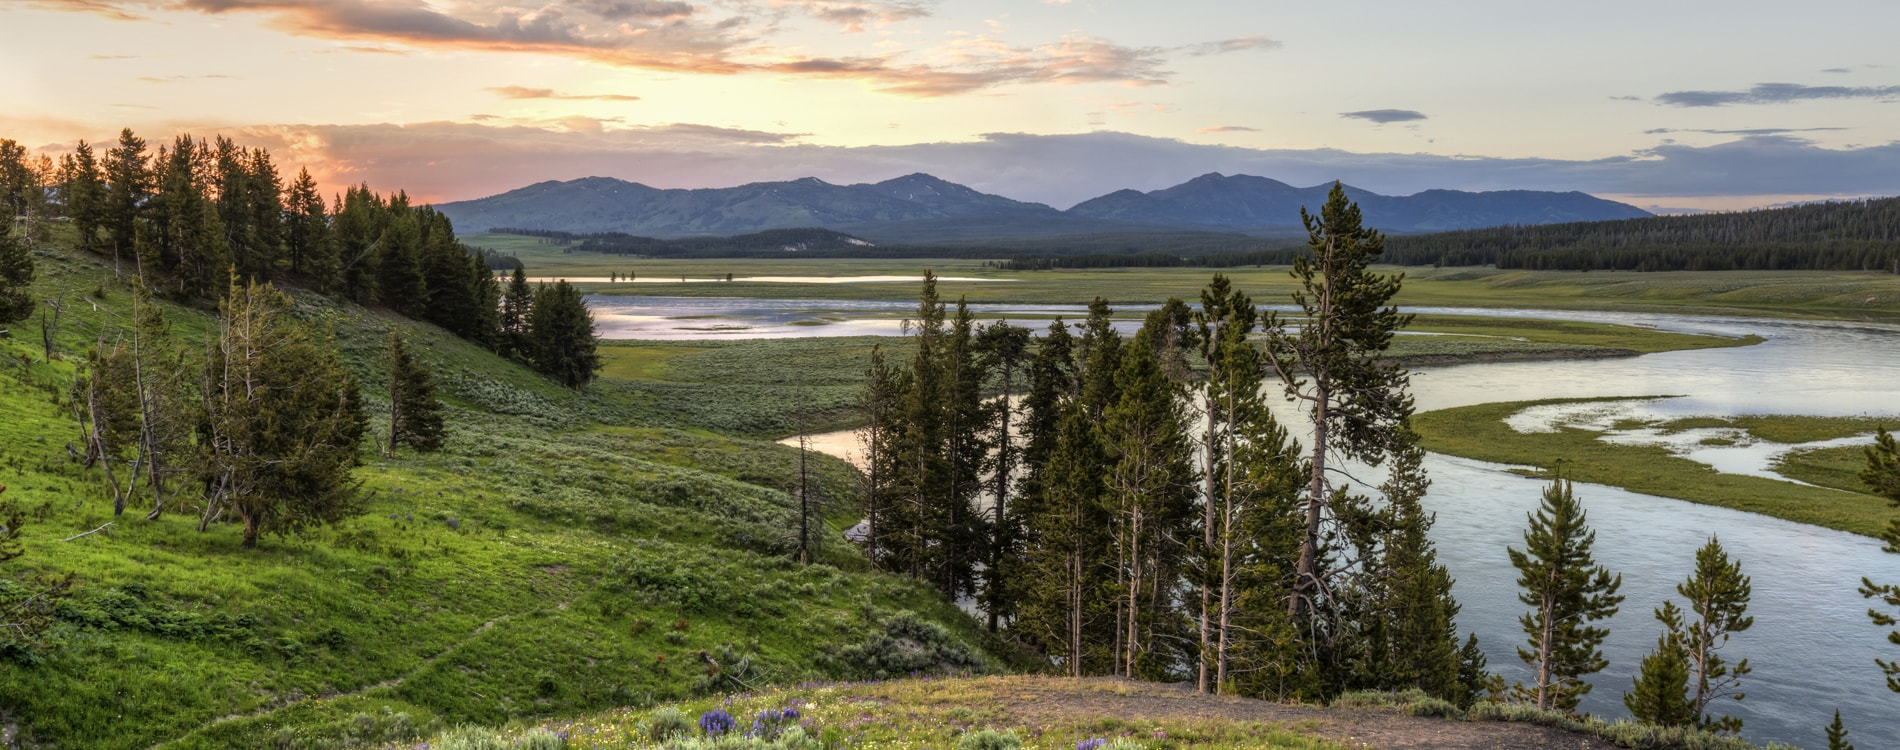 North Yellowstone, Montana